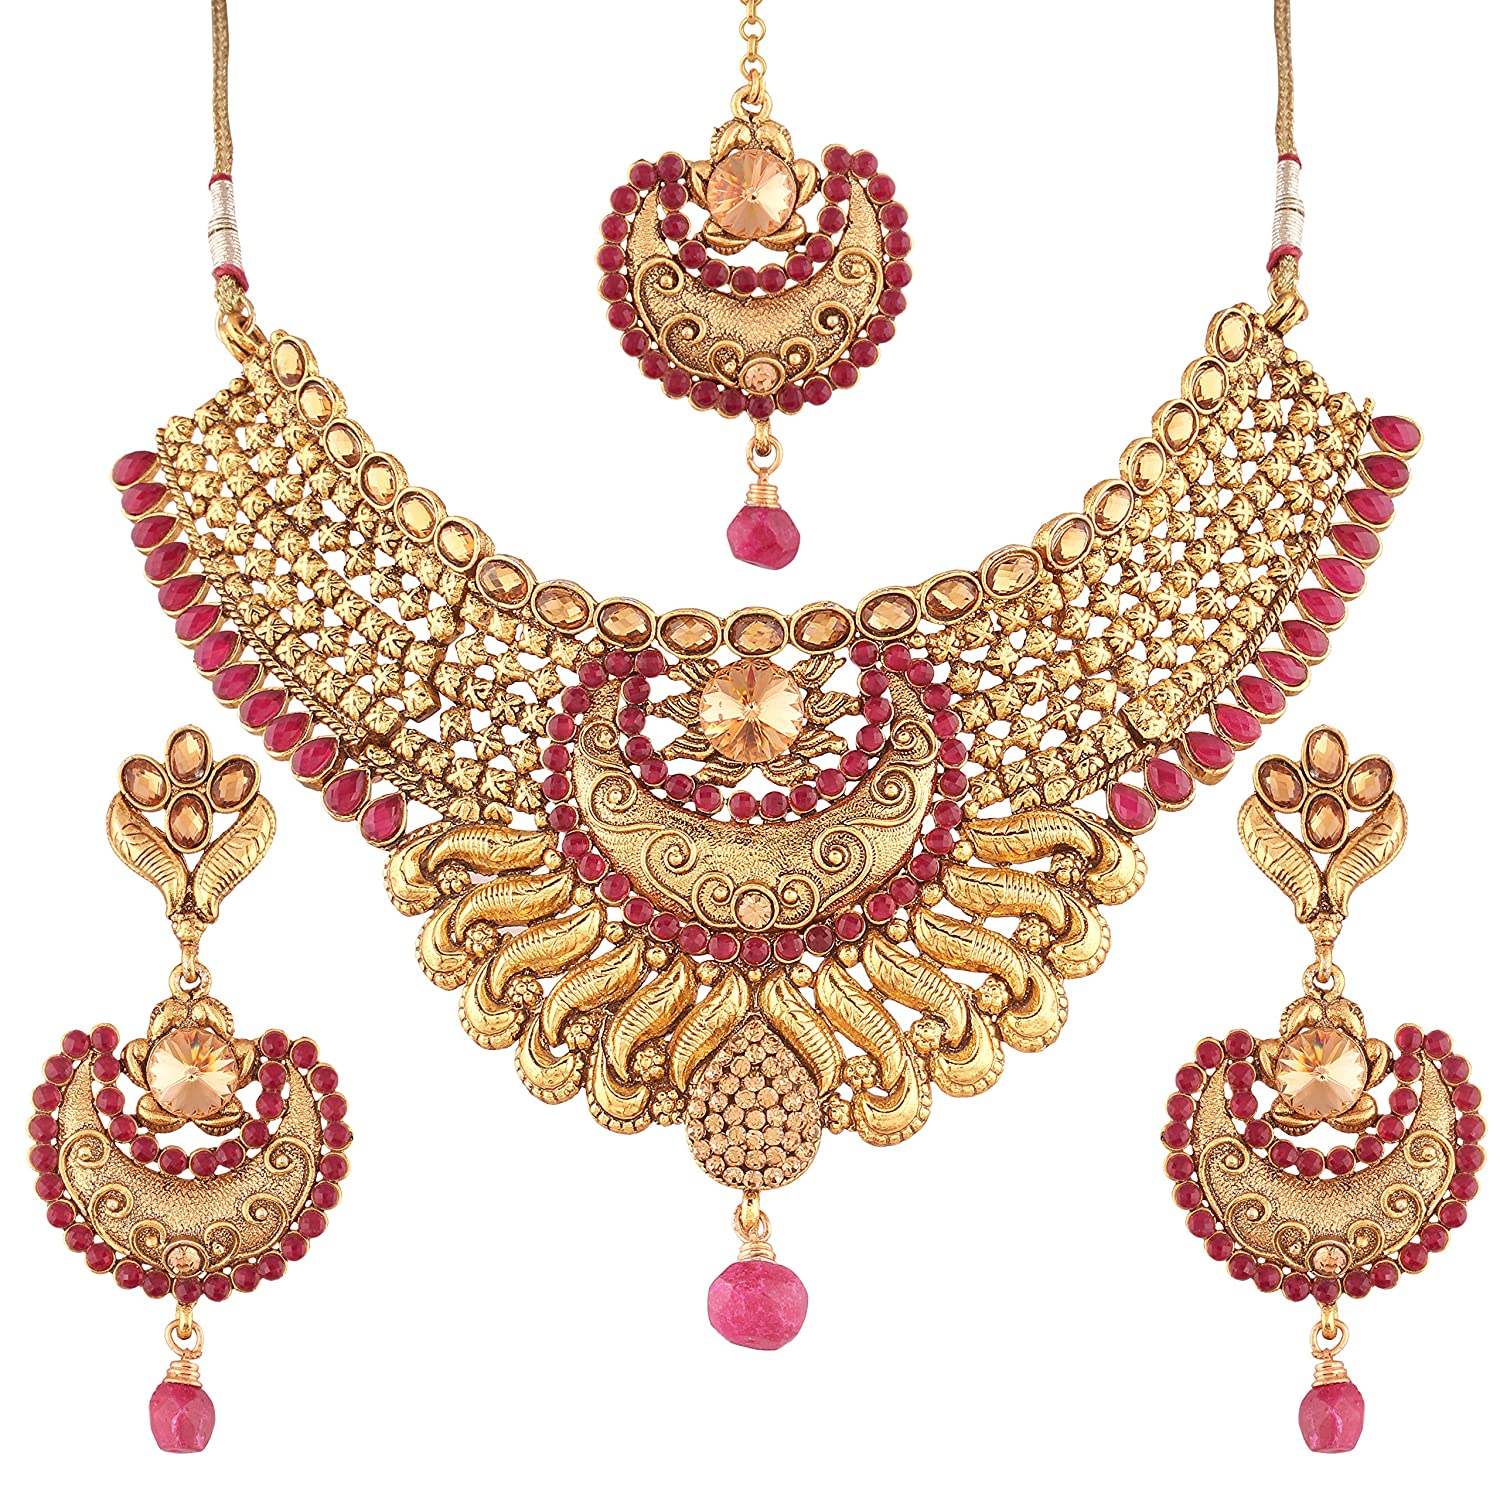 Jewelry & Watches Designer Choker Style Gold Tone Bollywood Style Jewelry Bridal Necklace Set We Take Customers As Our Gods Fashion Jewelry